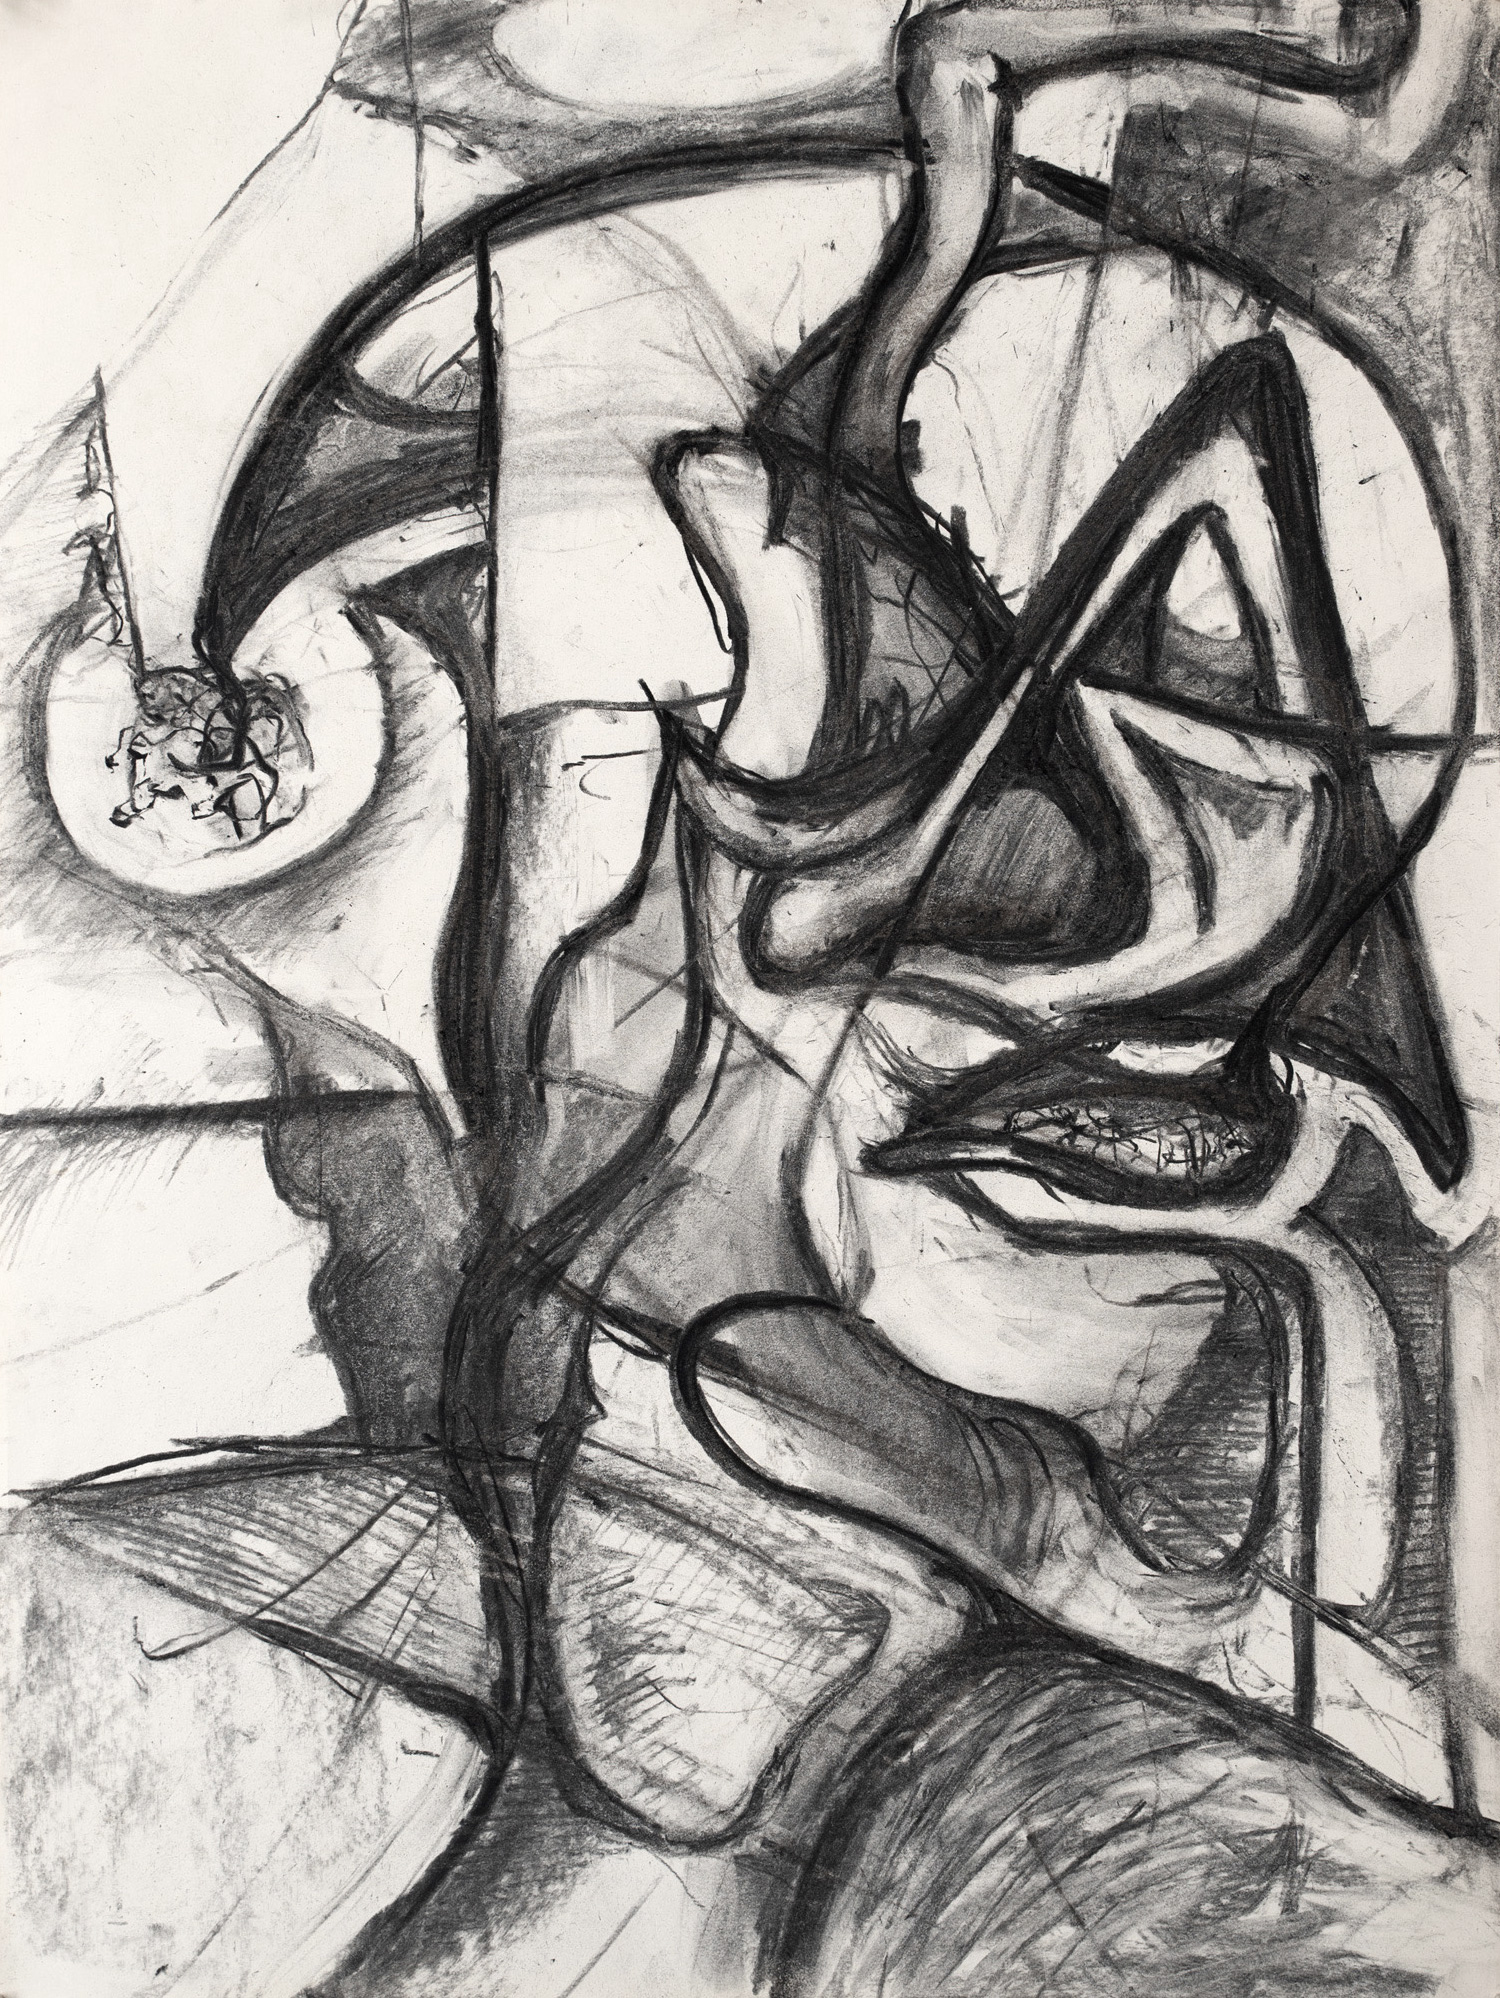 Berkeley Drawing No.2, Charcoal on paper, 42x56cm, 1996